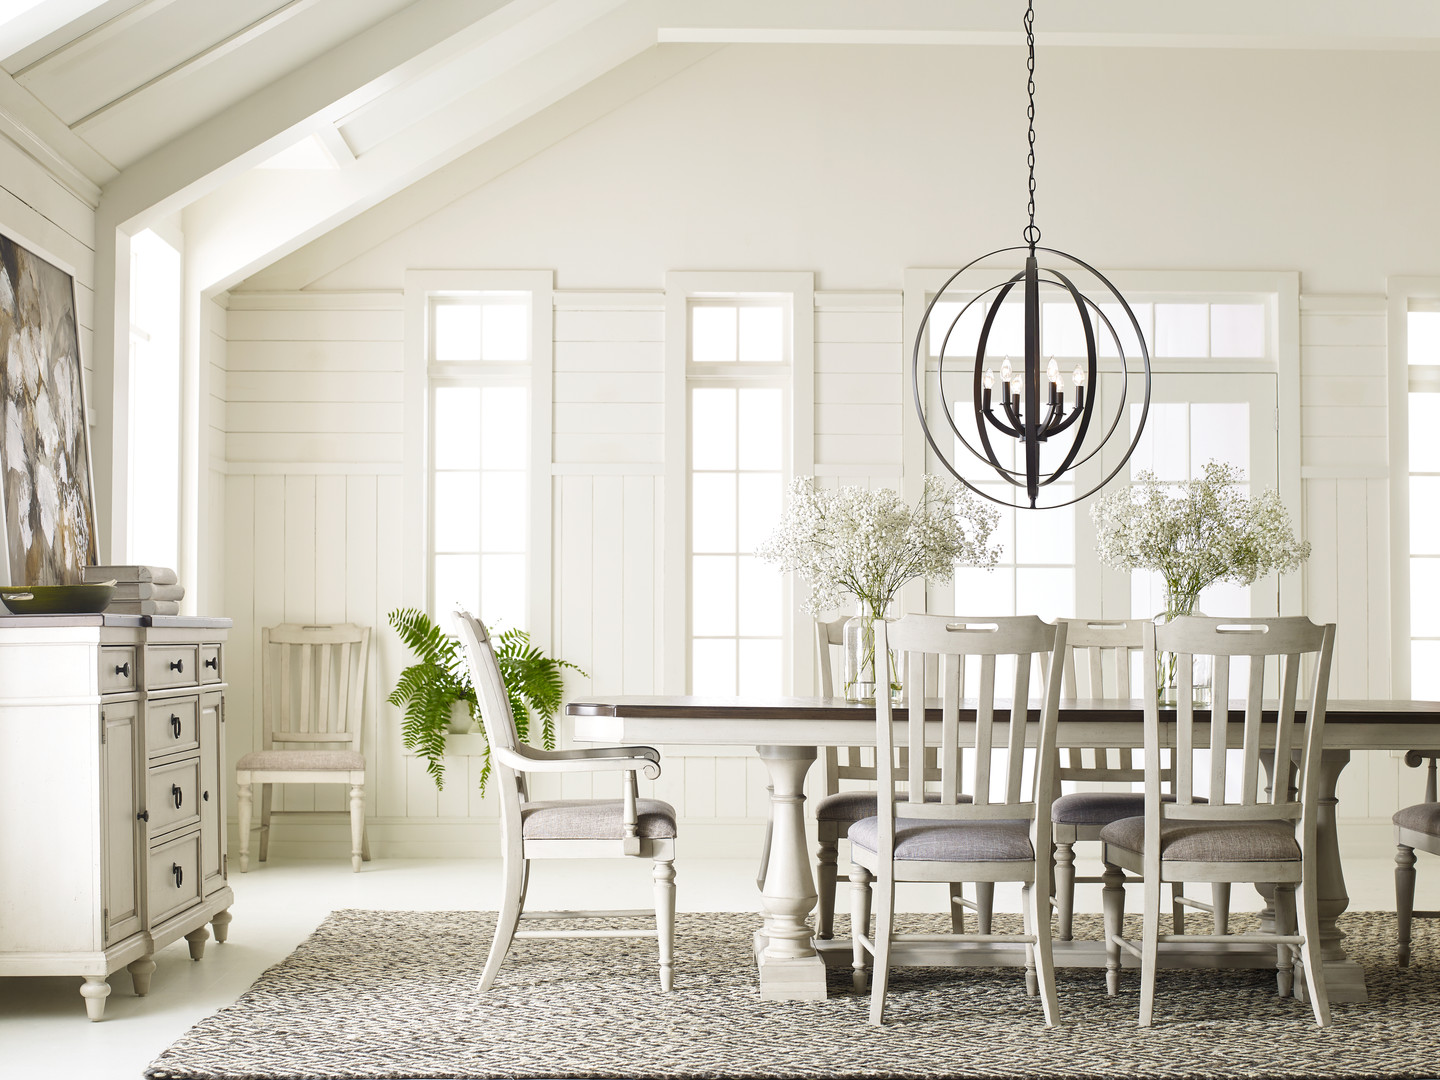 Trestle Dining Table with Slat Back Chairs